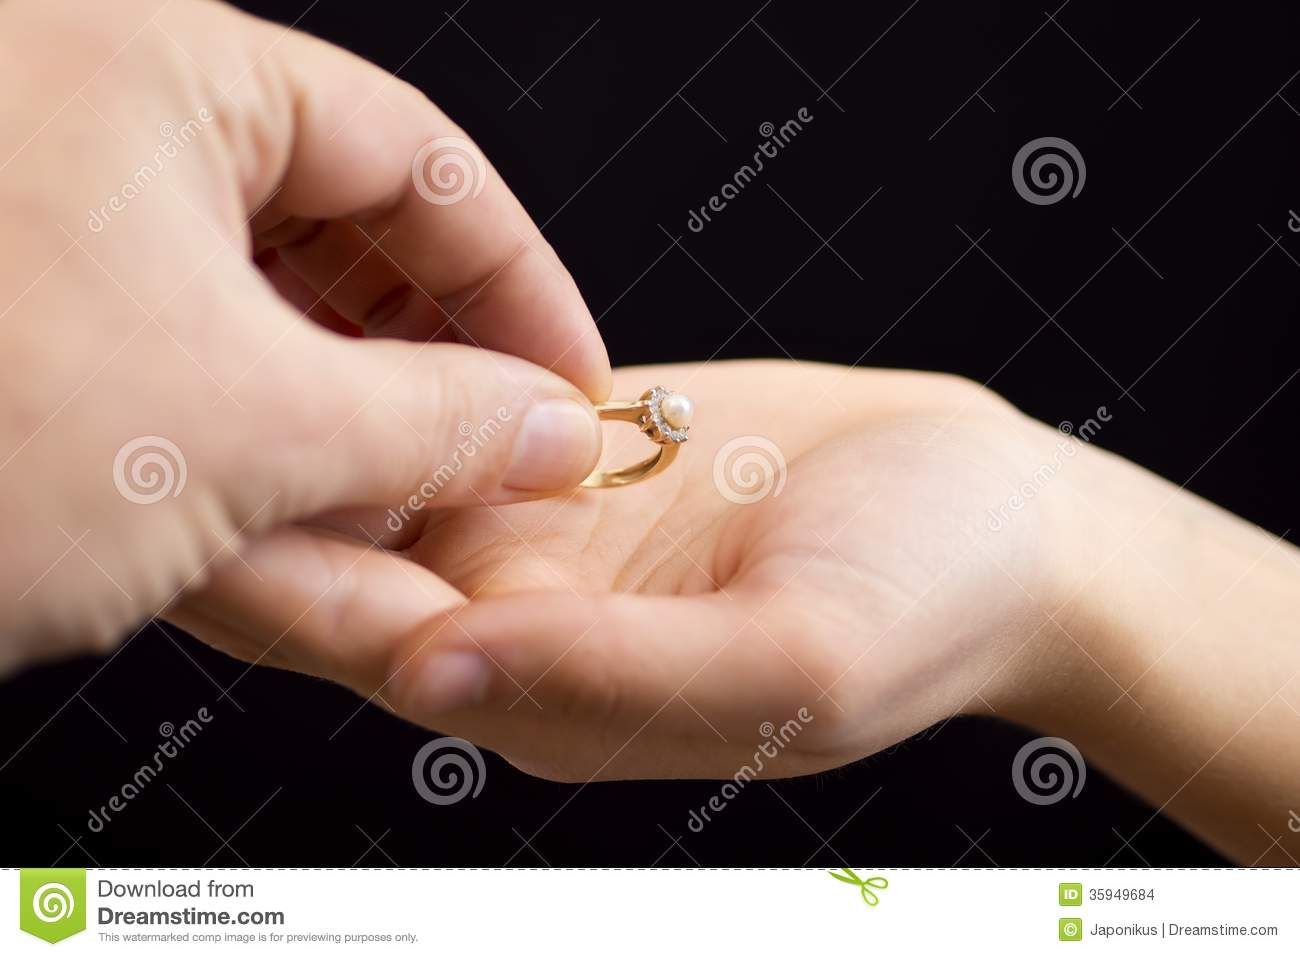 Putting A Ring In Girls Hand Stock Photo - Image of isolated, hand ...